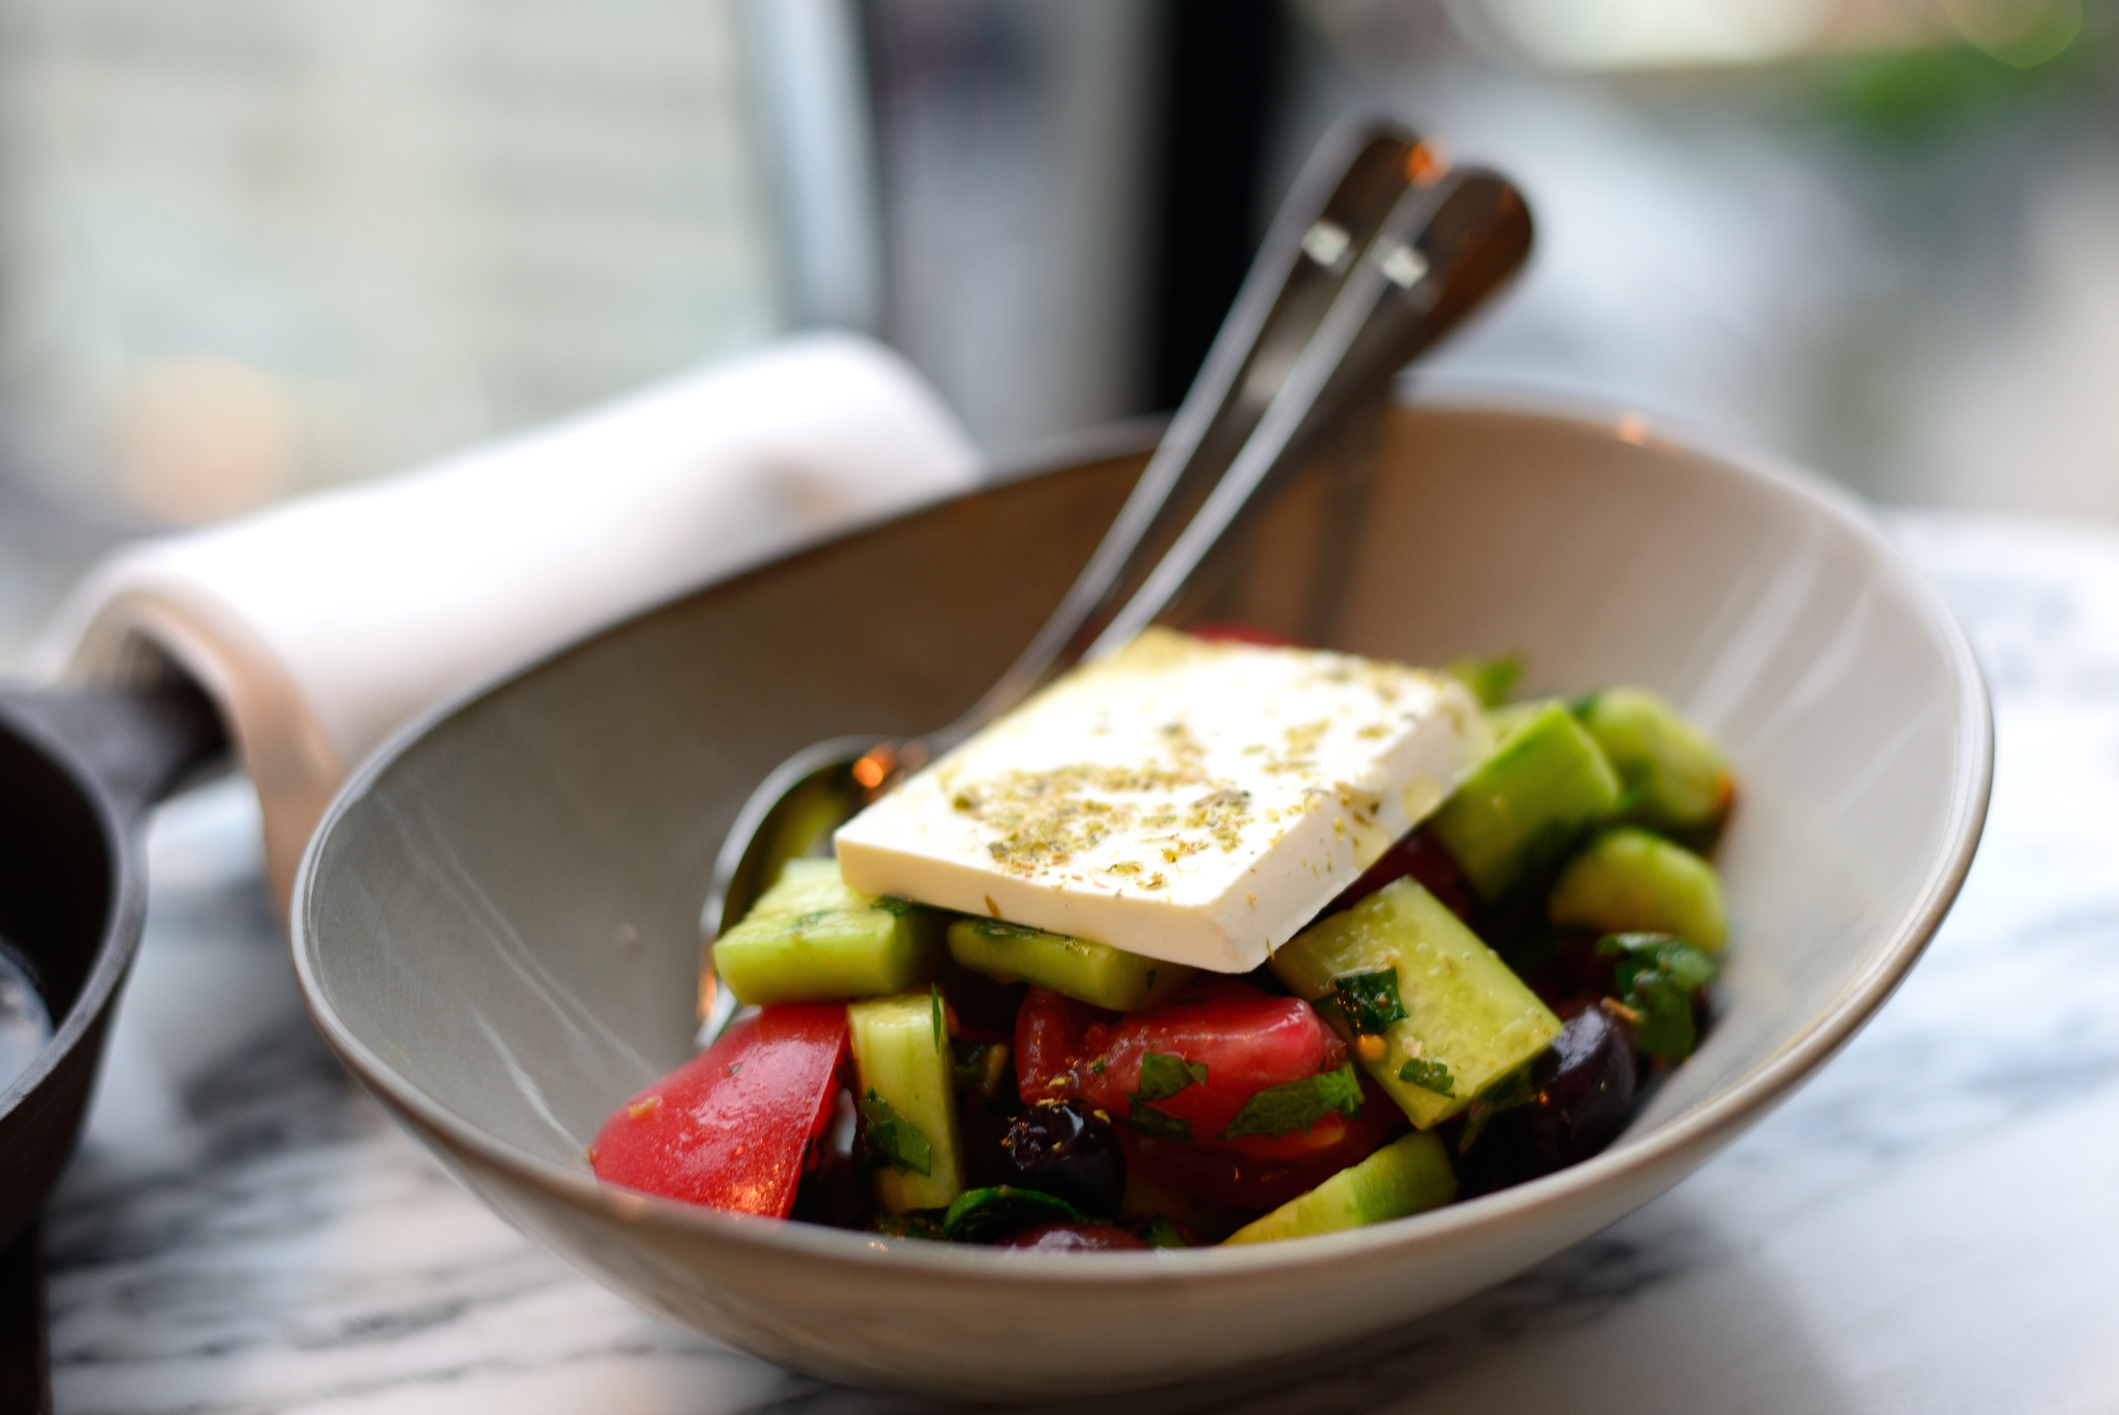 A bowl of Greek salad with a large chunk of feta cheese on top.